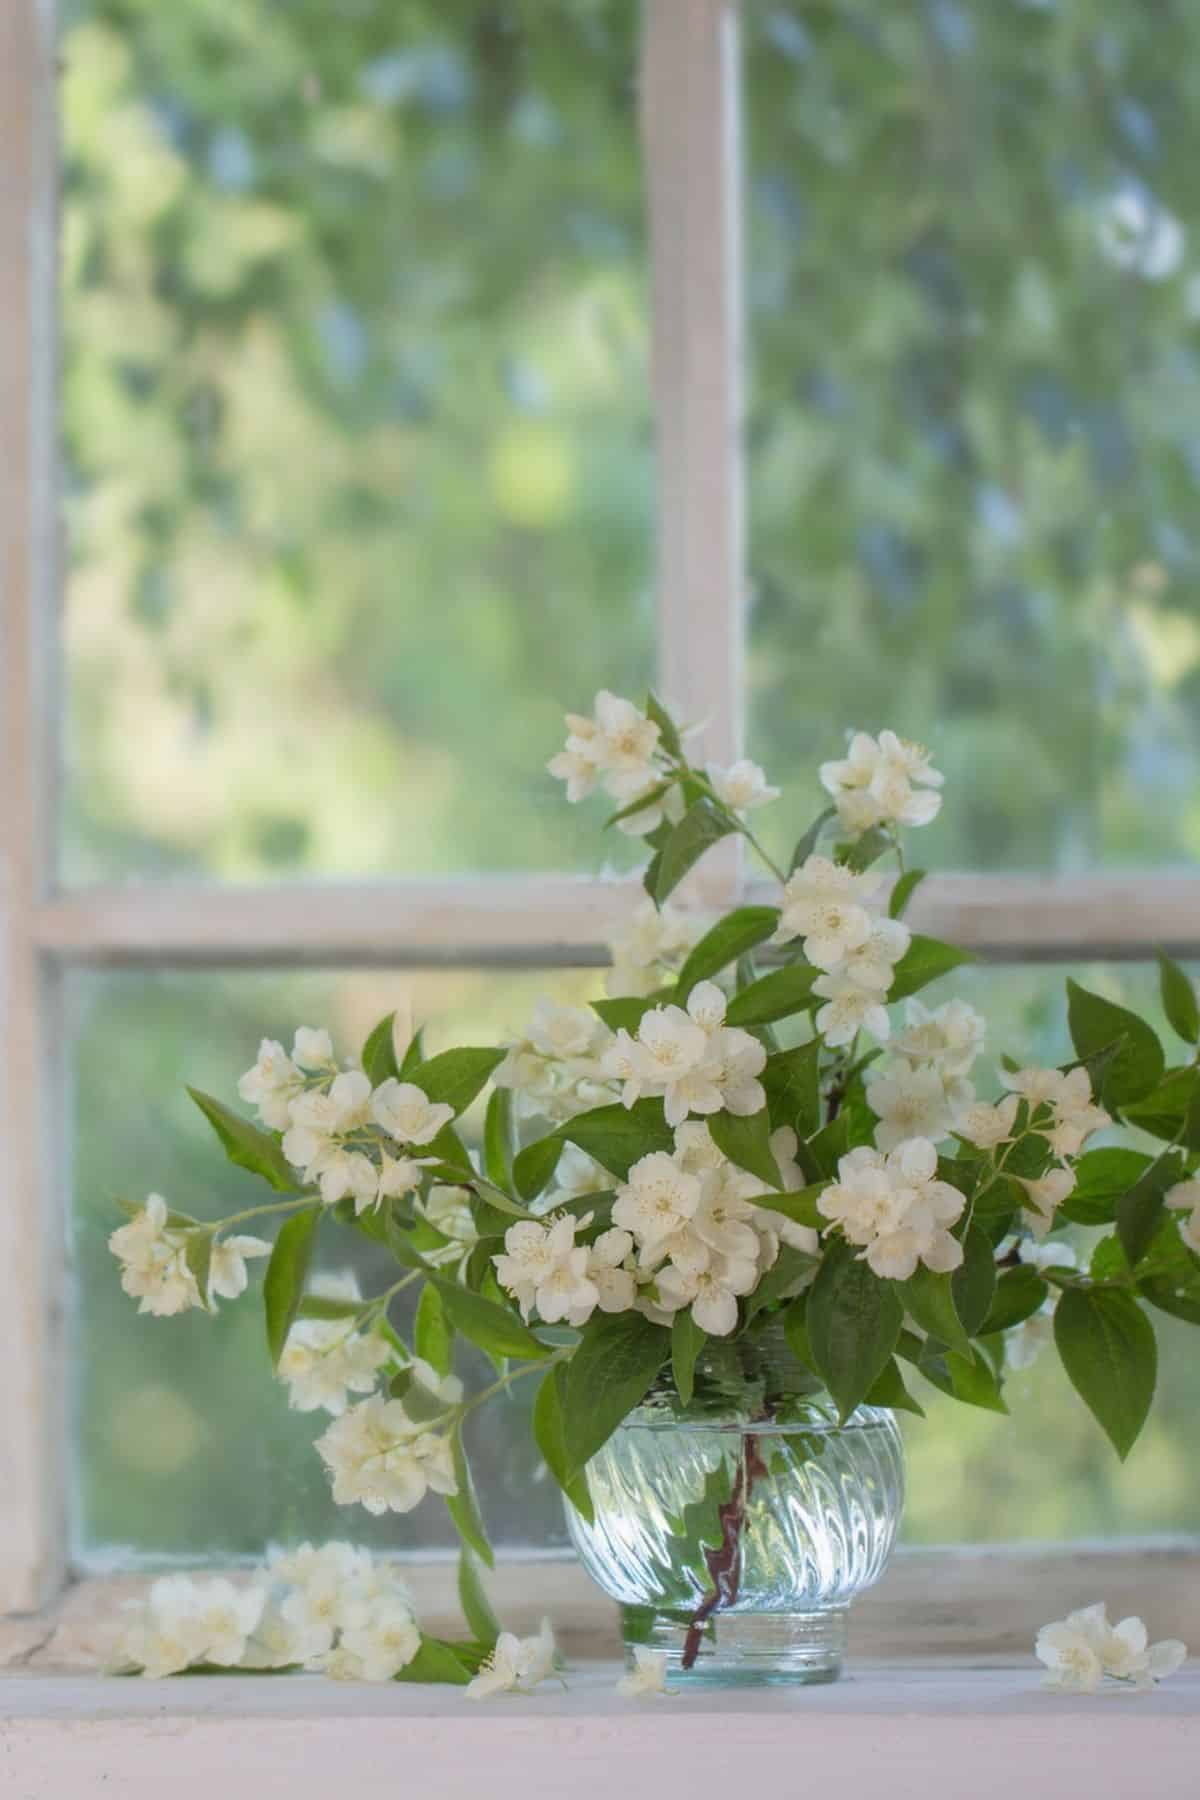 old fashioned window with white flowers in sill